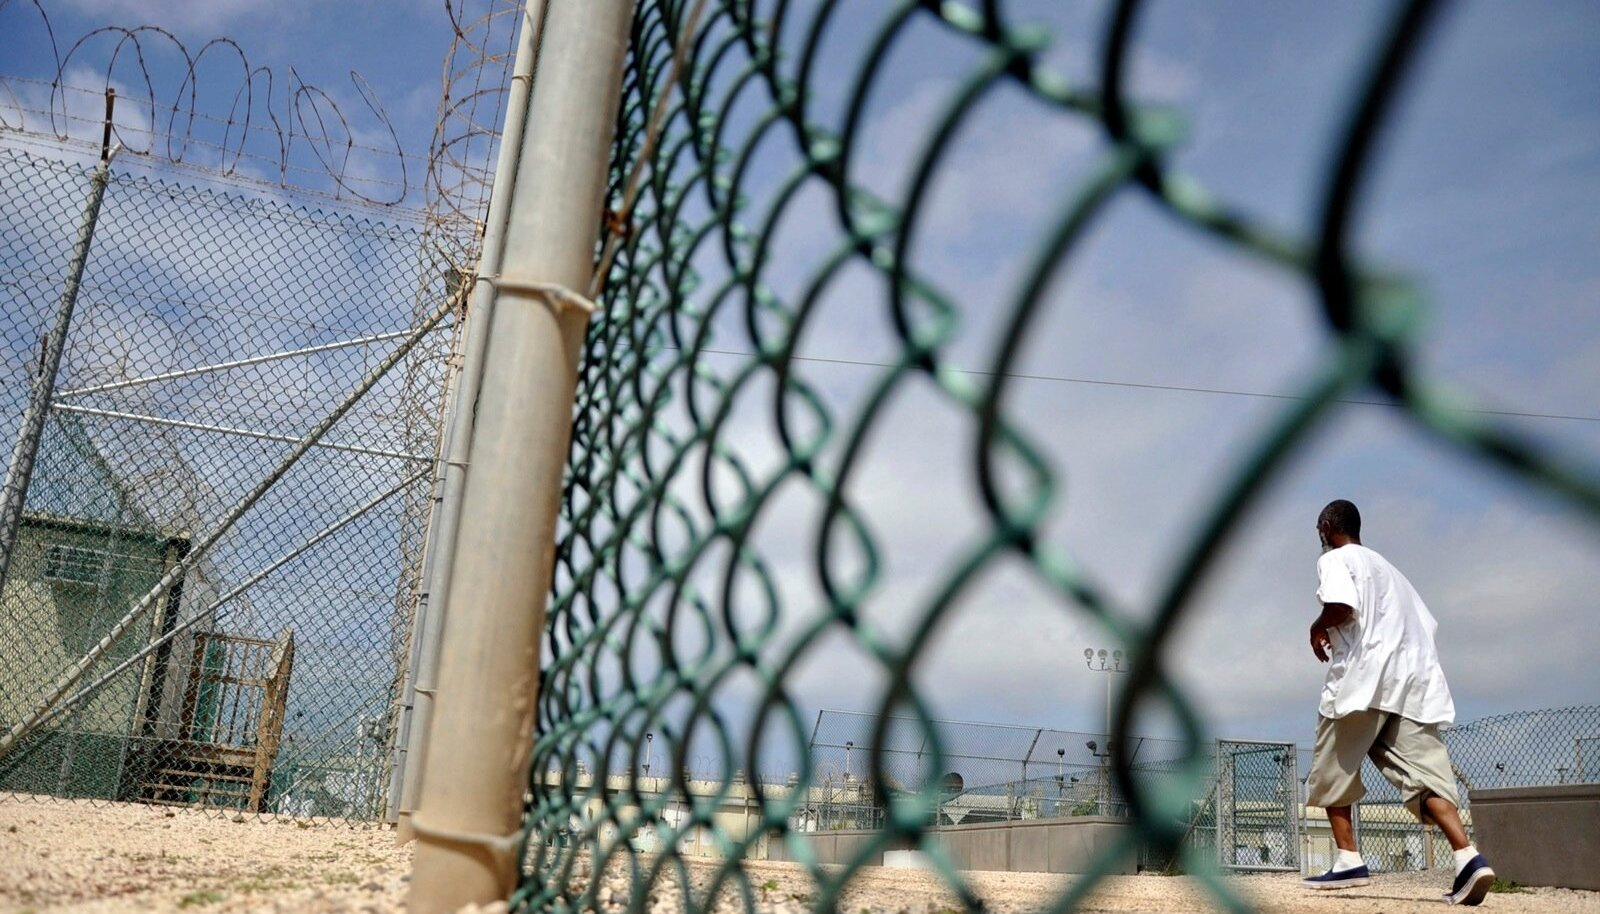 File picture shows a Guantanamo detainee running inside an exercise area at the detention facility at Guantanamo Bay U.S. Naval Base